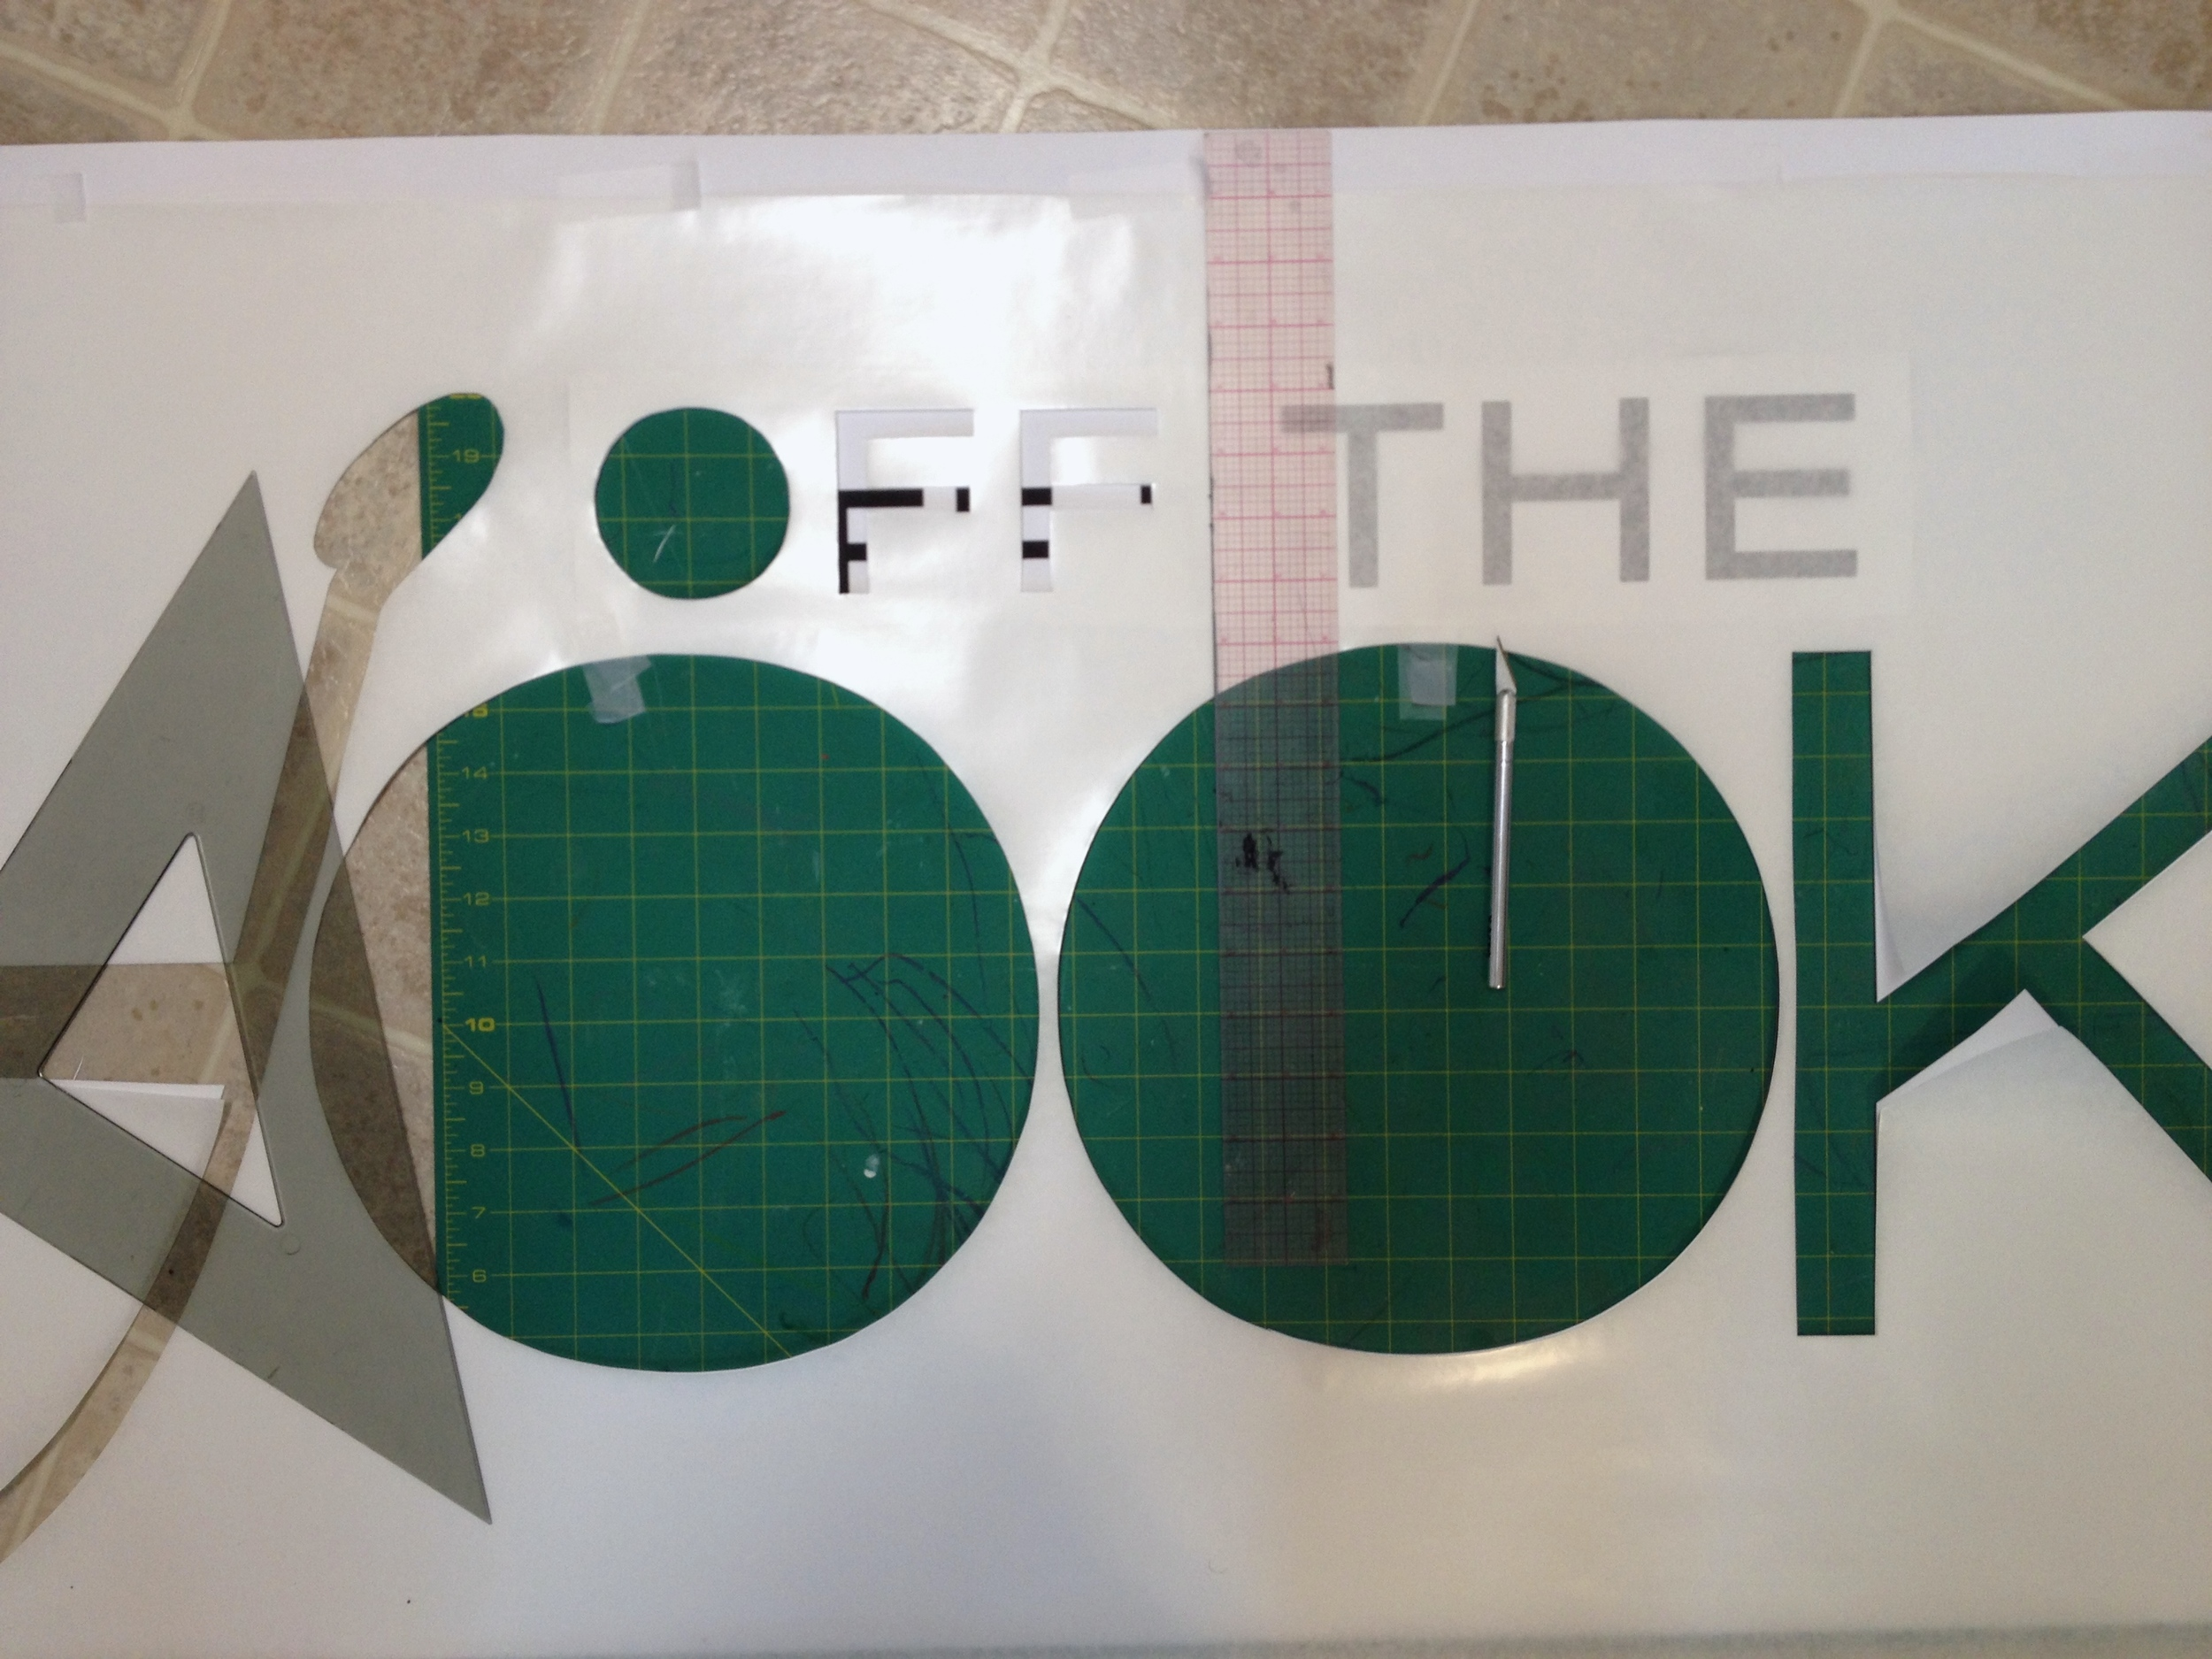 Cutting out the logo using frisket paper, X-acto blades, a cutting mat and straight edges.